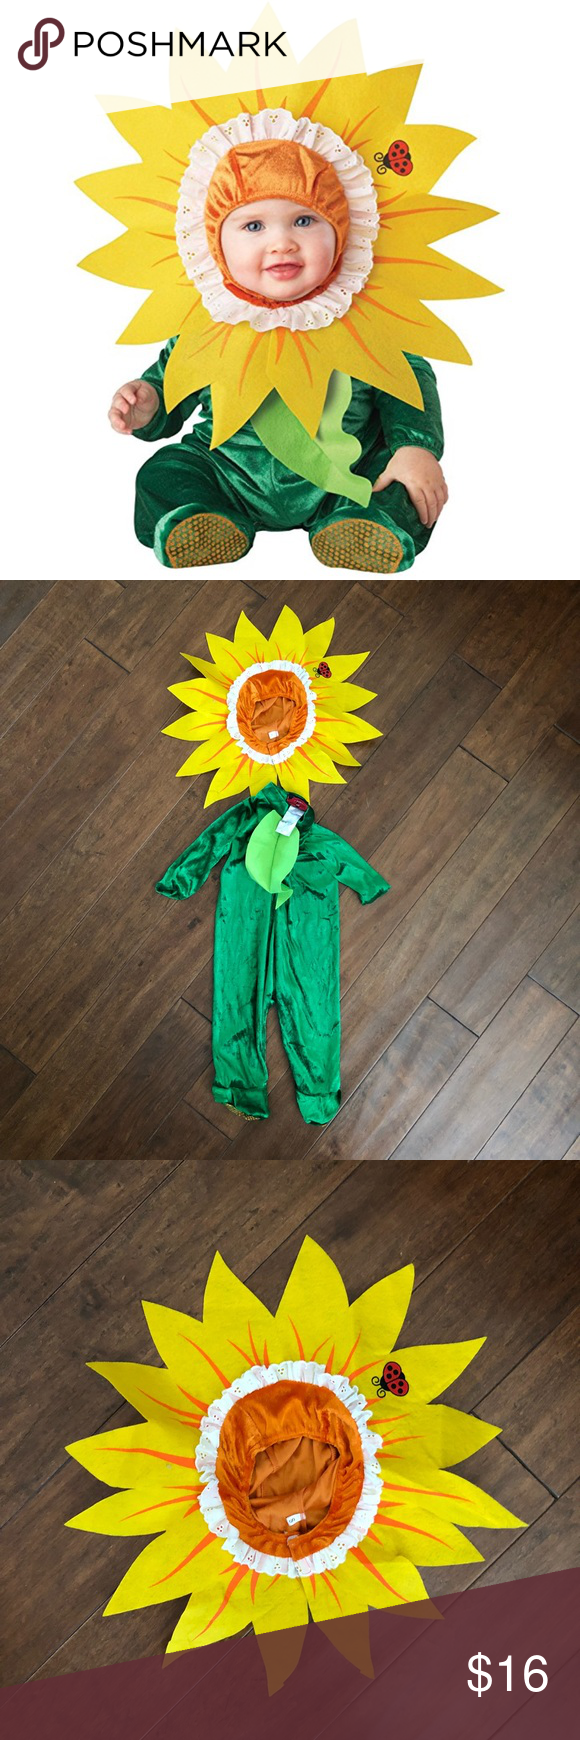 2d801189f1b3b Sunflower Baby Costume Size Small (6-12 months) Infant Silly Sunflower  costume includes